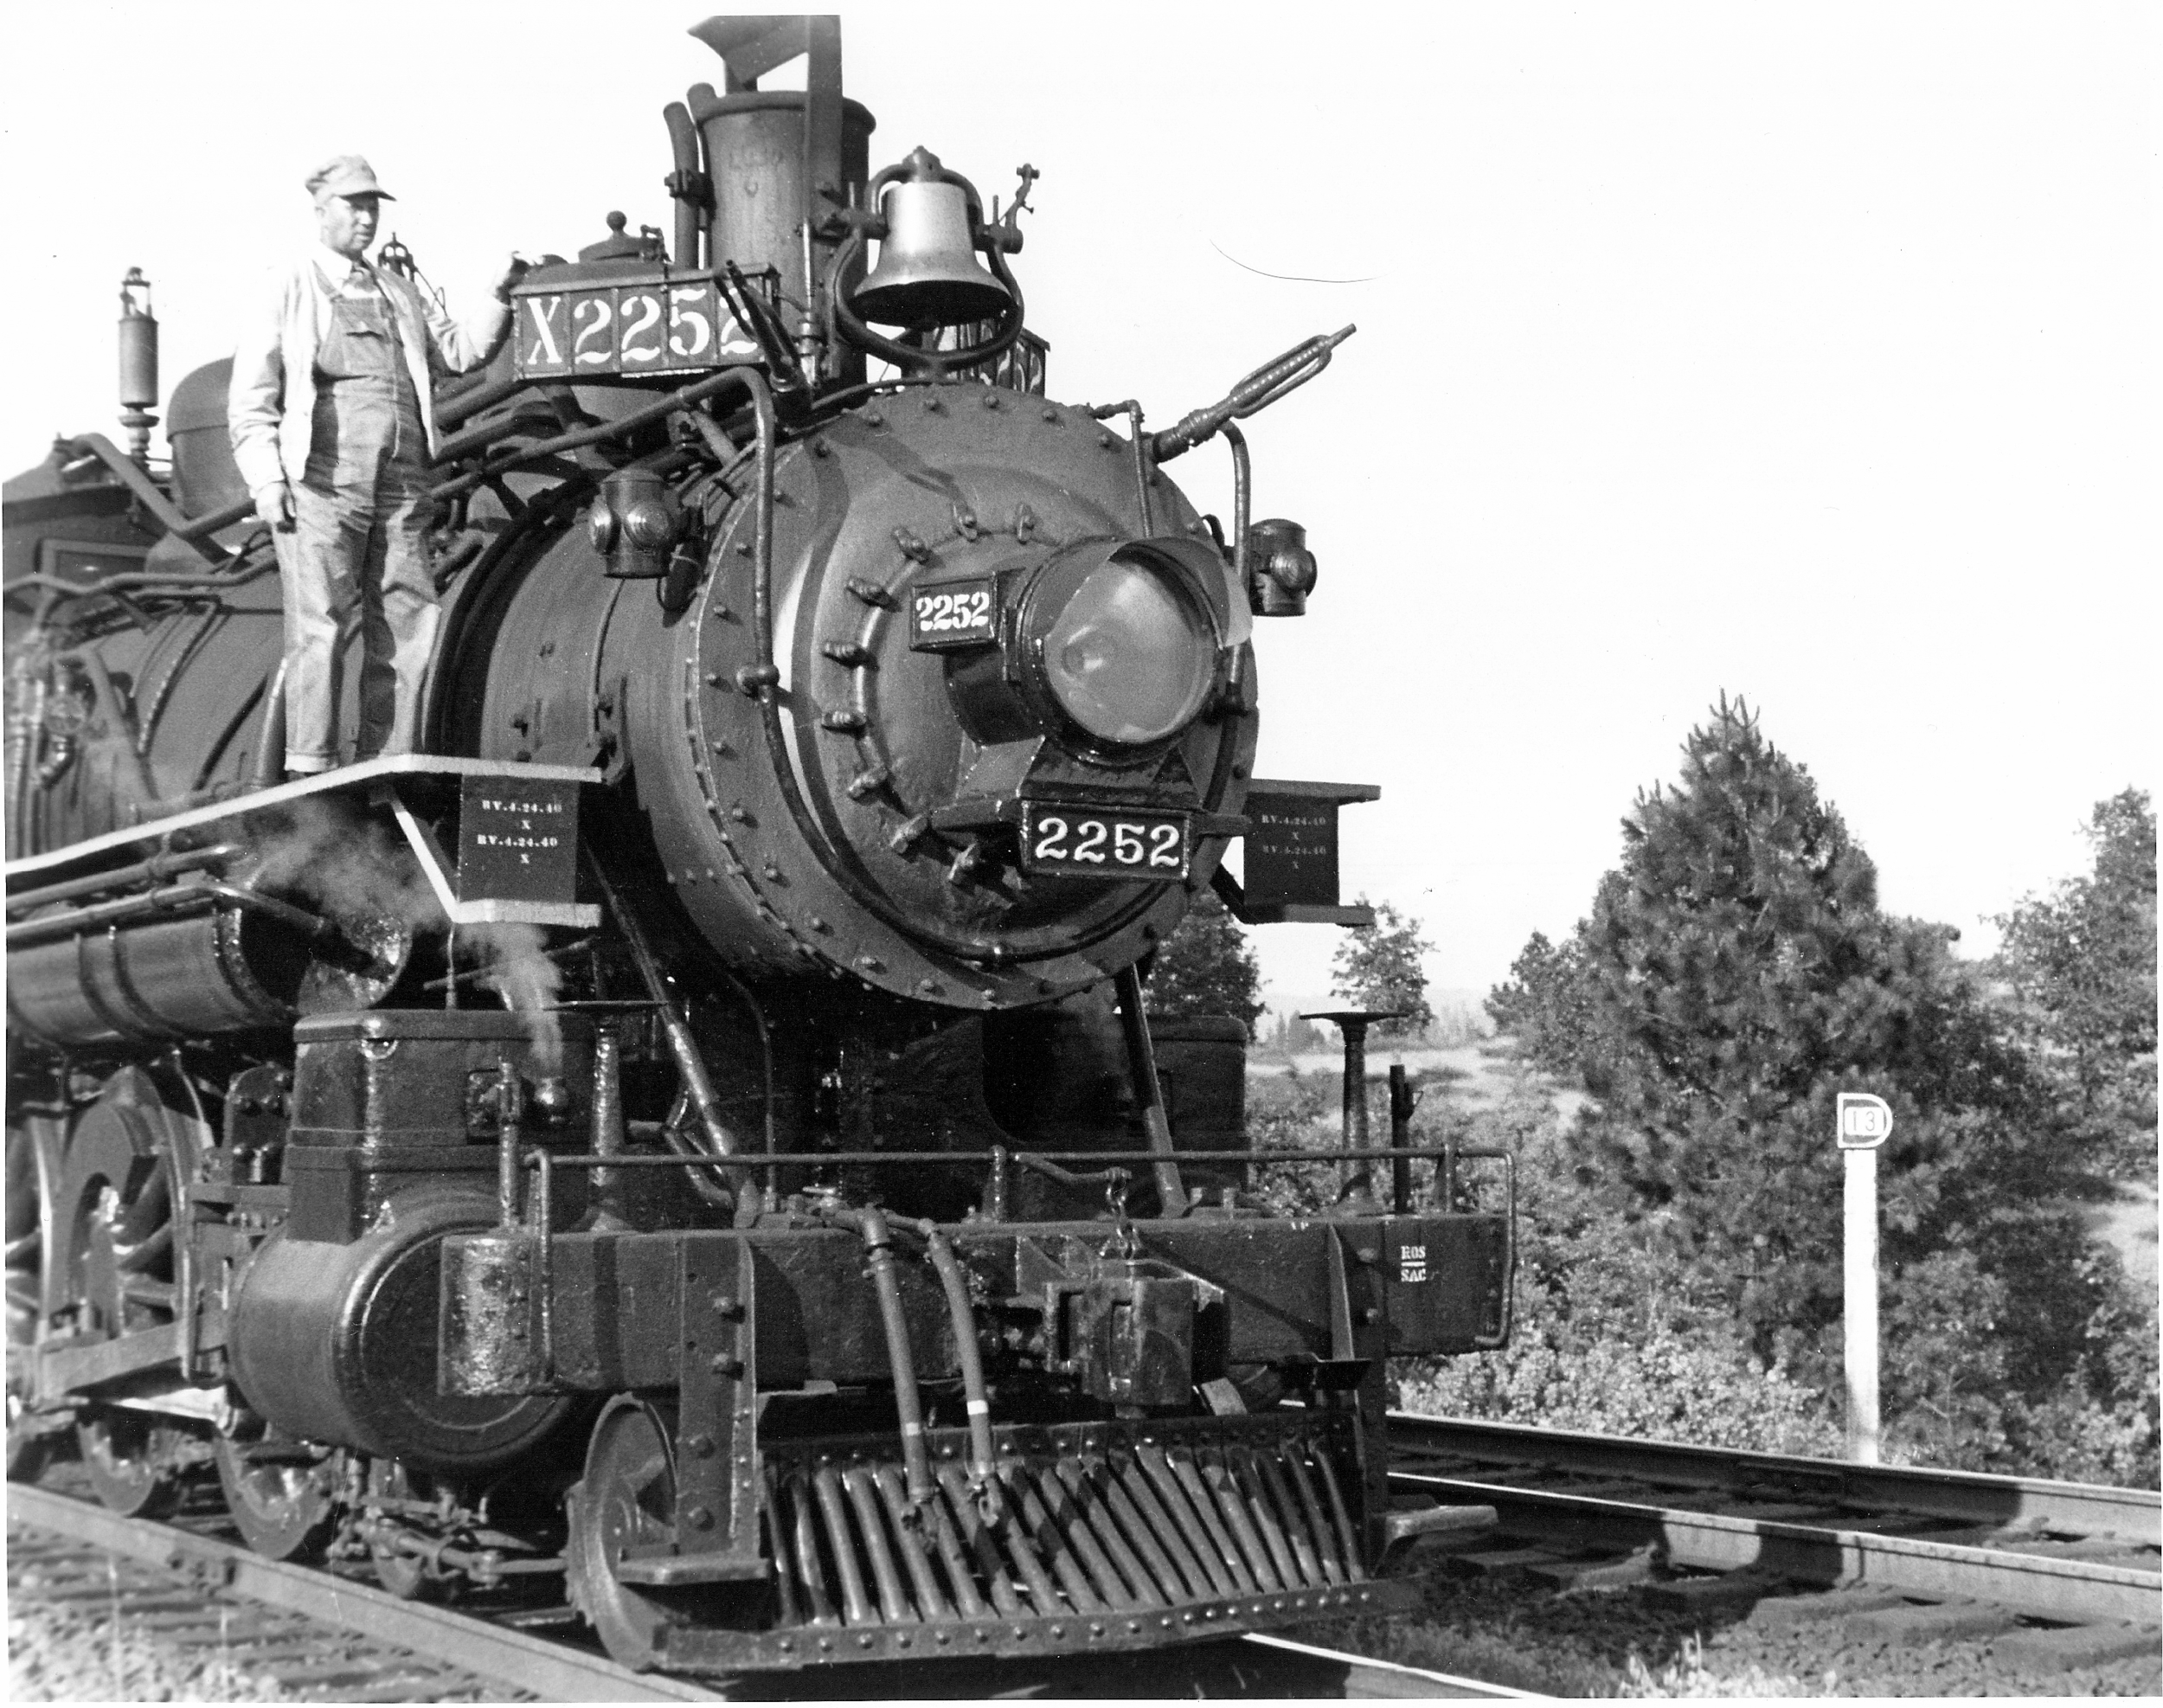 """LOCOMOTIVE NO. 2252 IS A SYMBOL OF THE HISTORY AND OF THE SOCIAL AND ECONOMIC IMPACT OF THE RAILROAD ON ROSEVILLE."